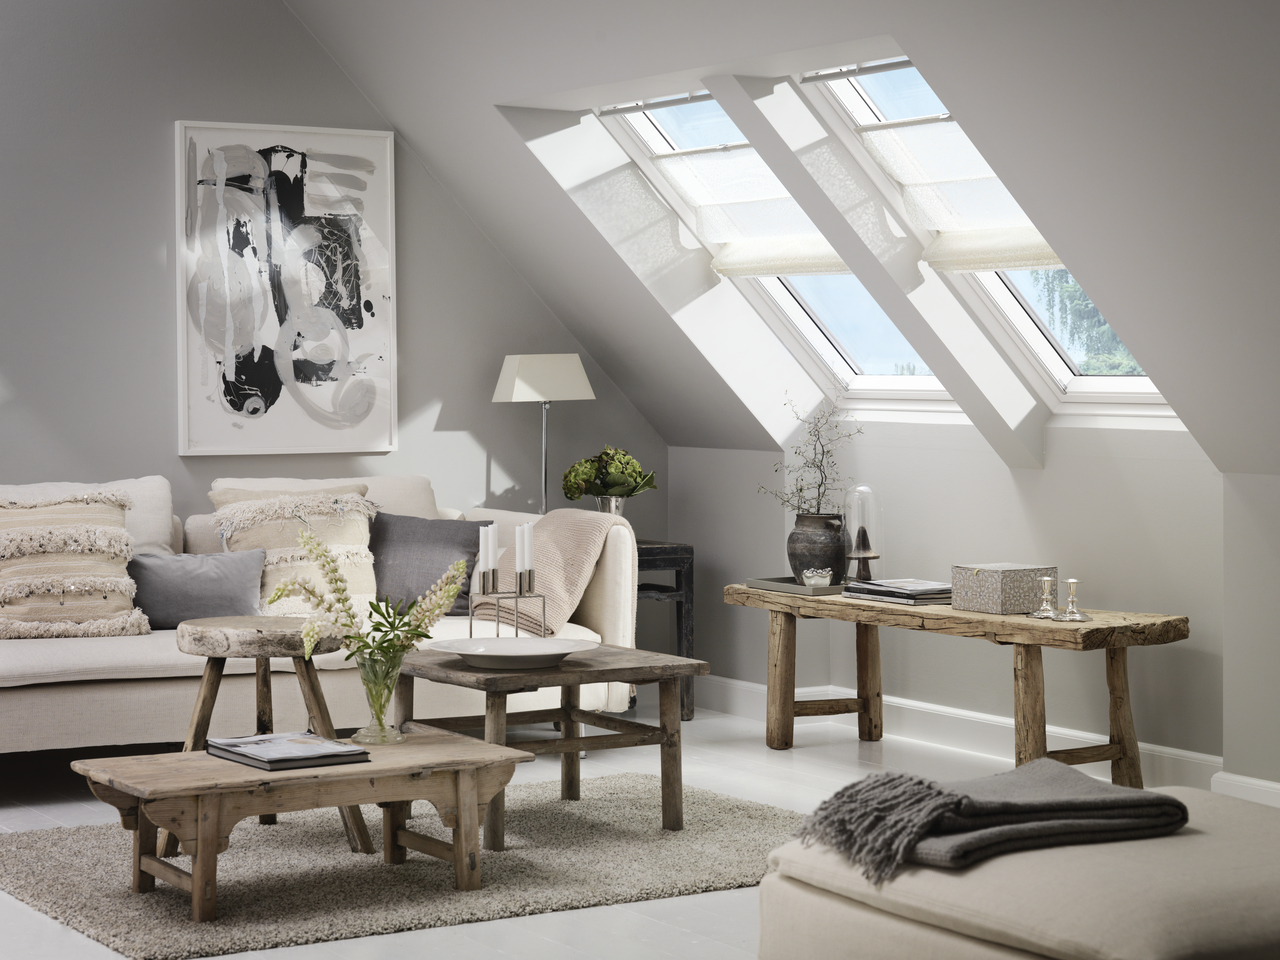 Le nuove tende a pacchetto velux for Tende per finestre a soffitto